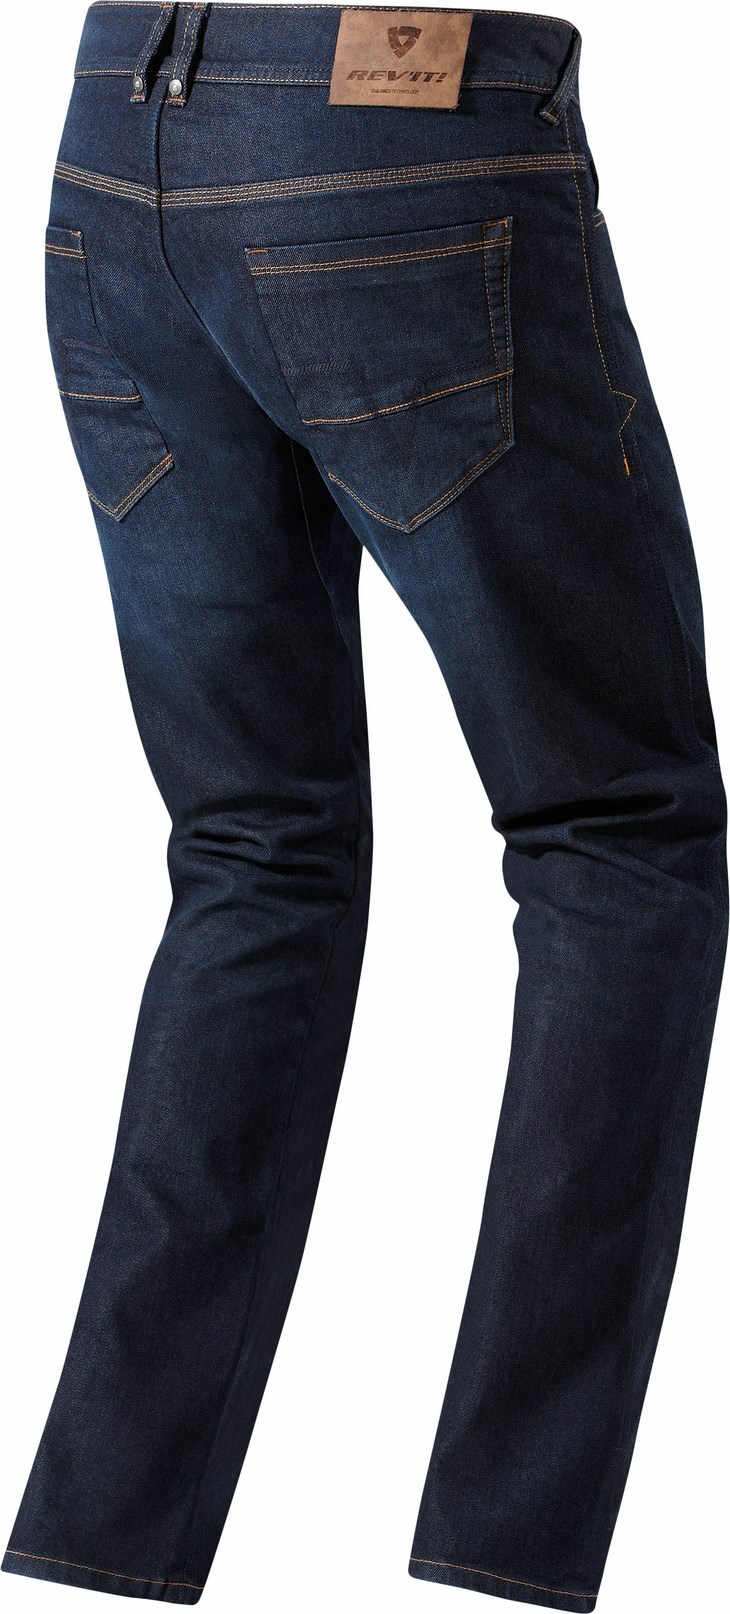 Philly bike Rev'It Jeans Dark Blue Stretched